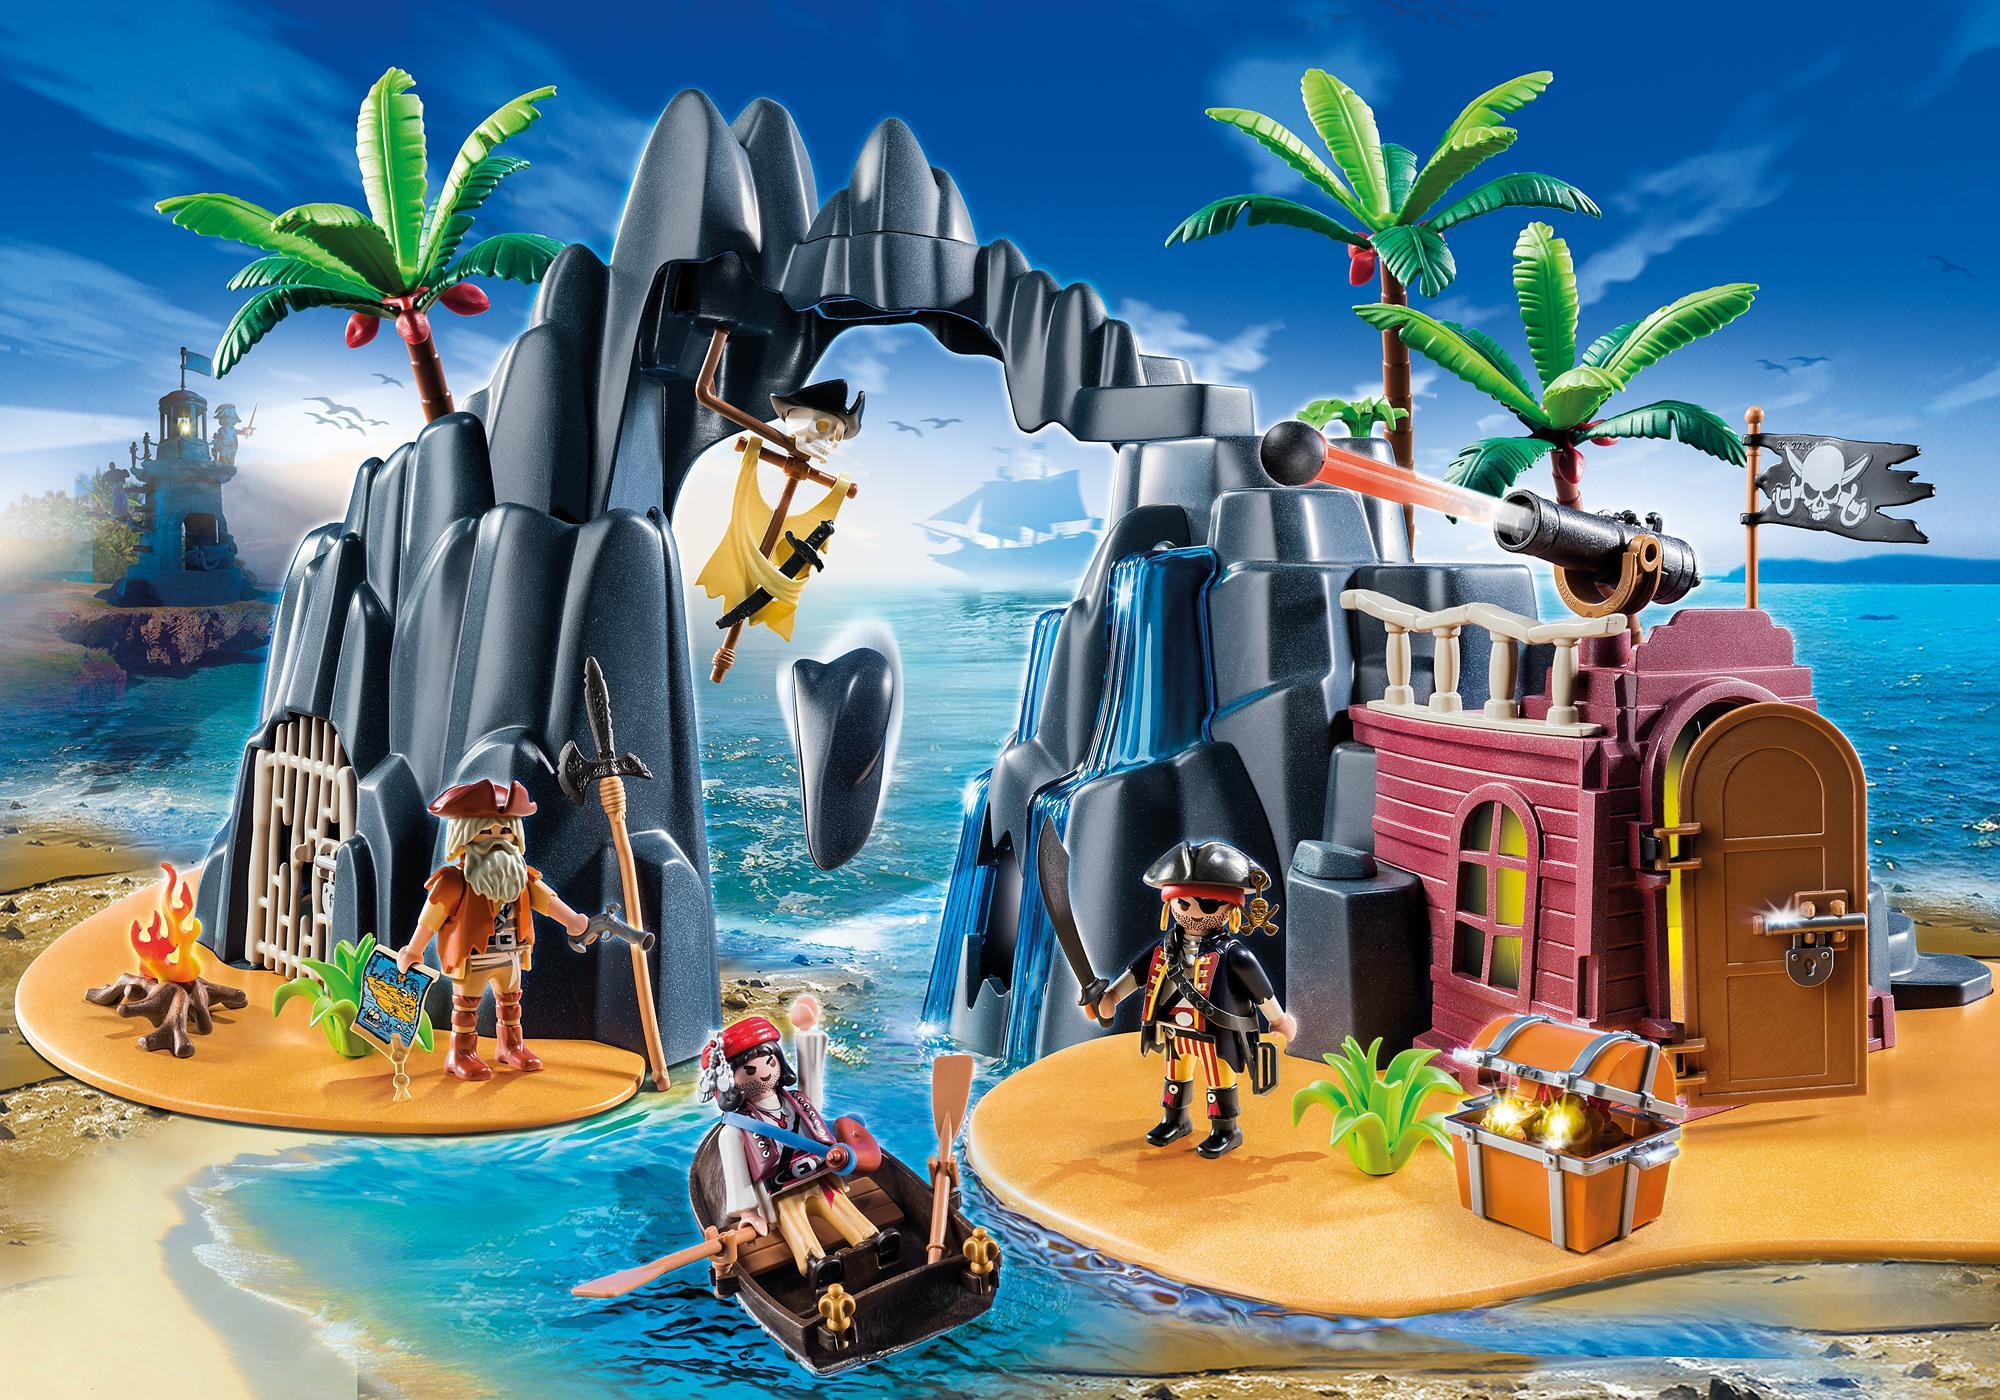 http://media.playmobil.com/i/playmobil/6679_product_detail/Πειρατικό νησί θησαυρού